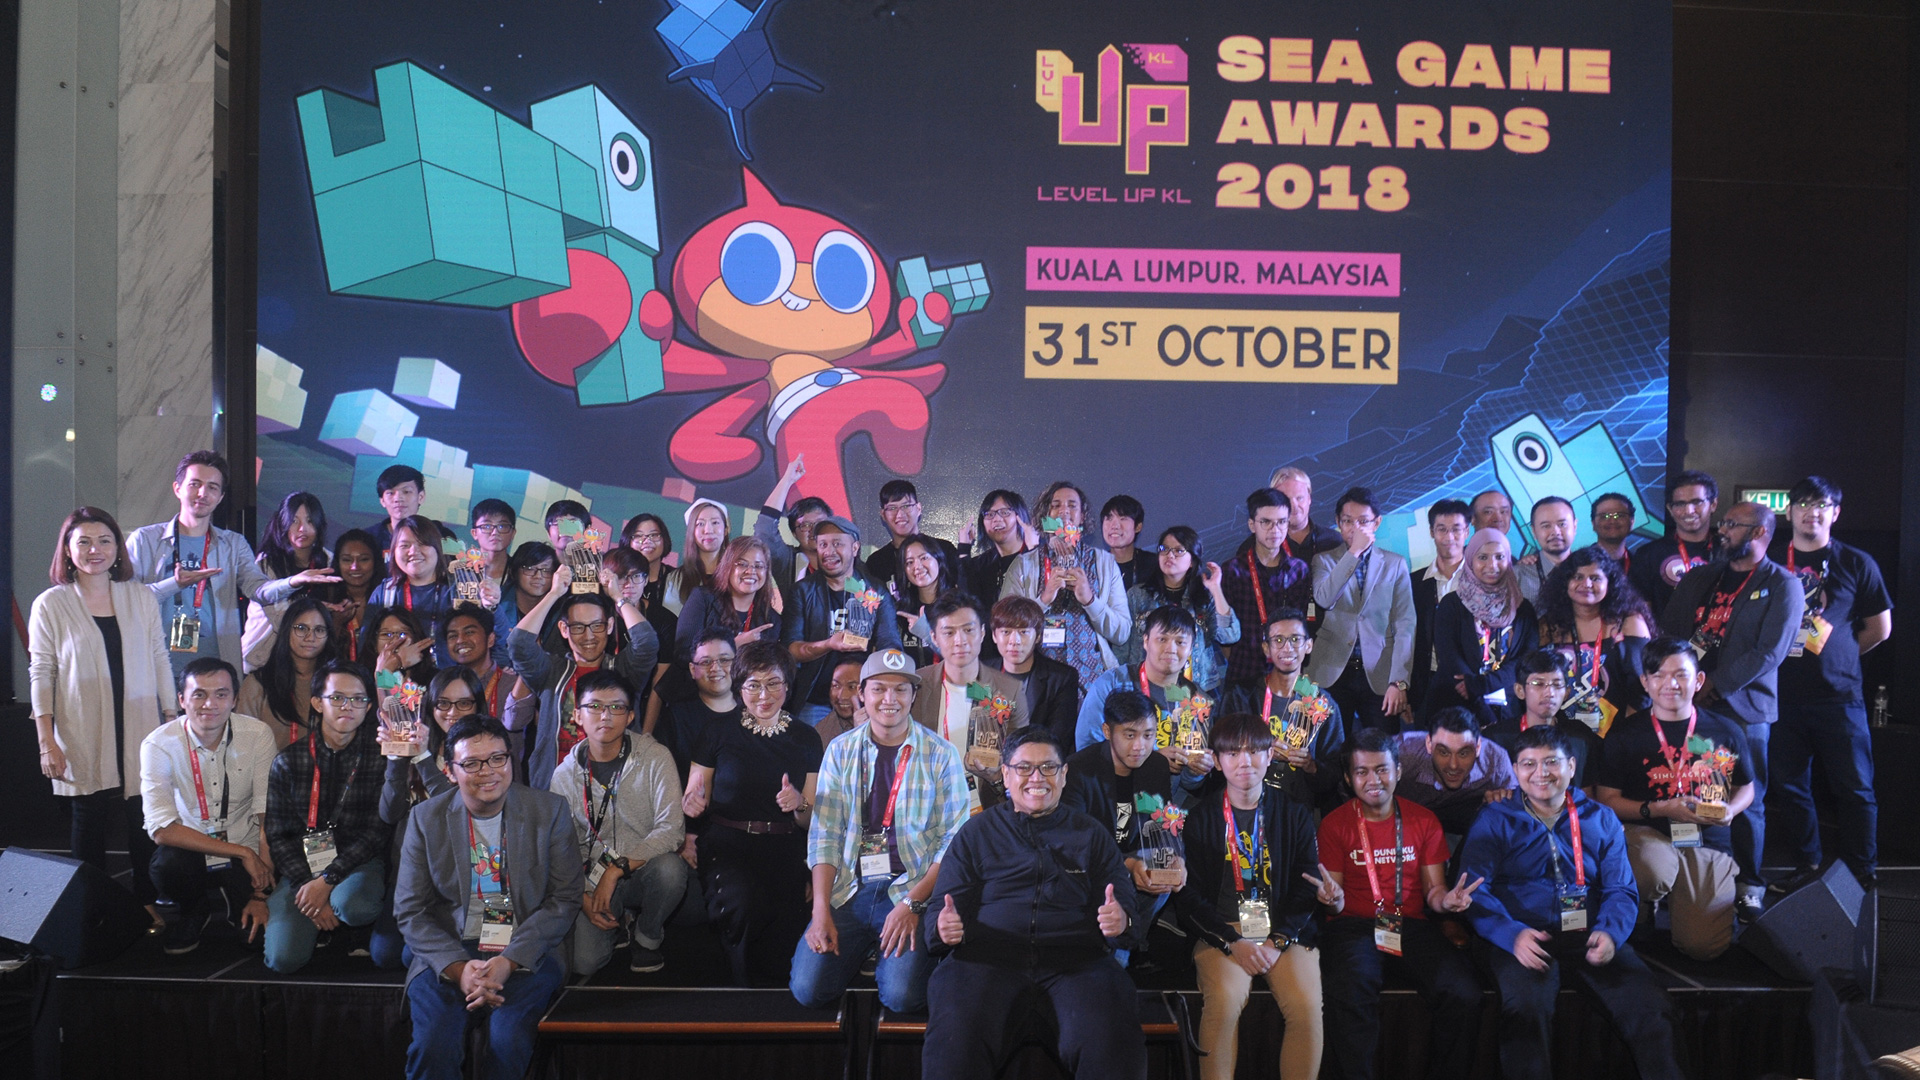 Level Up KL 2018 - SEA Game Awards 2018